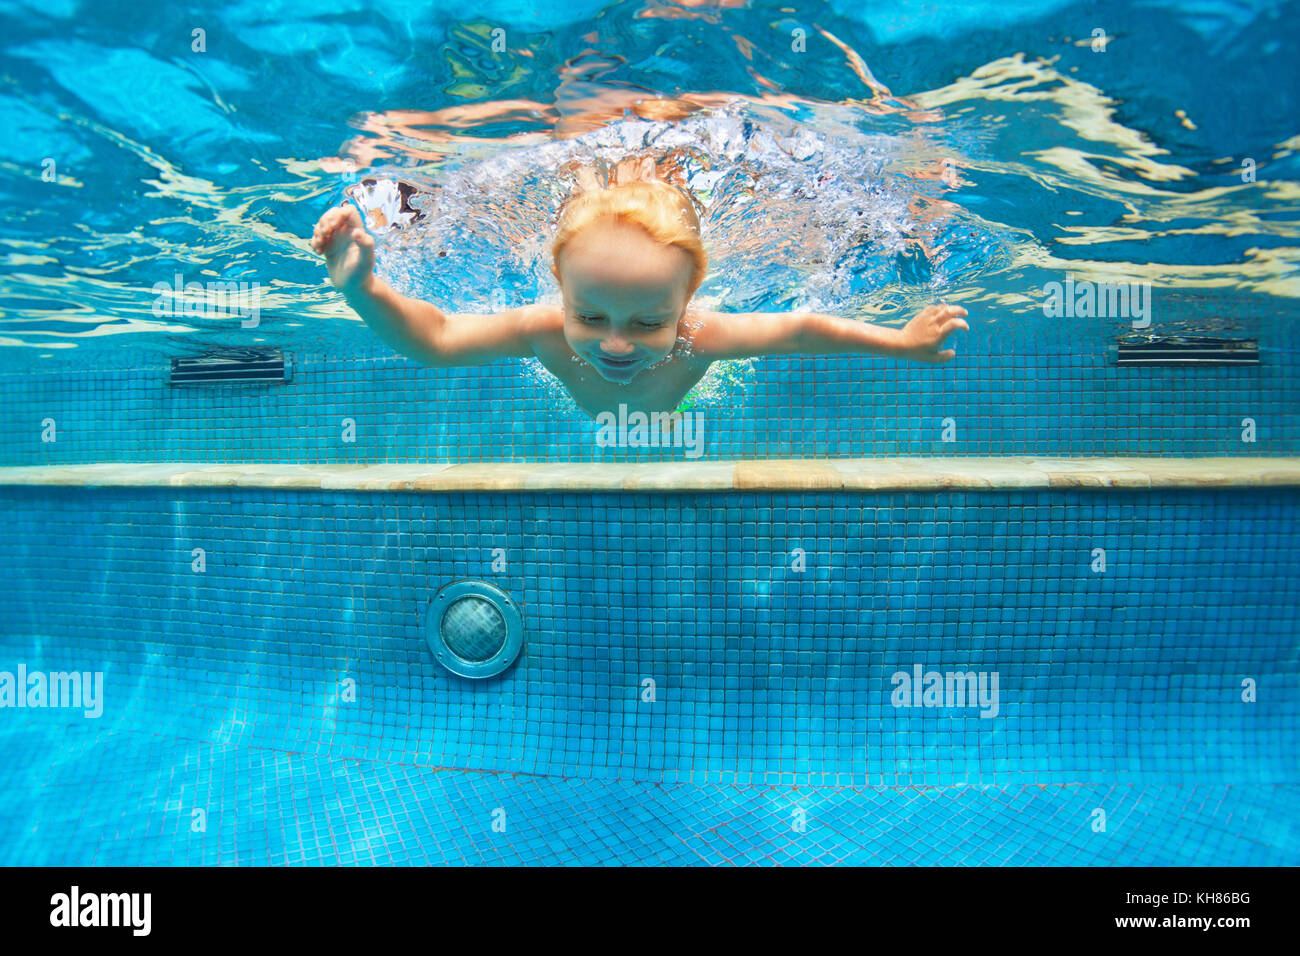 Funny child learn swimming, diving in blue pool with fun - jumping deep down underwater with splashes. Family lifestyle, - Stock Image